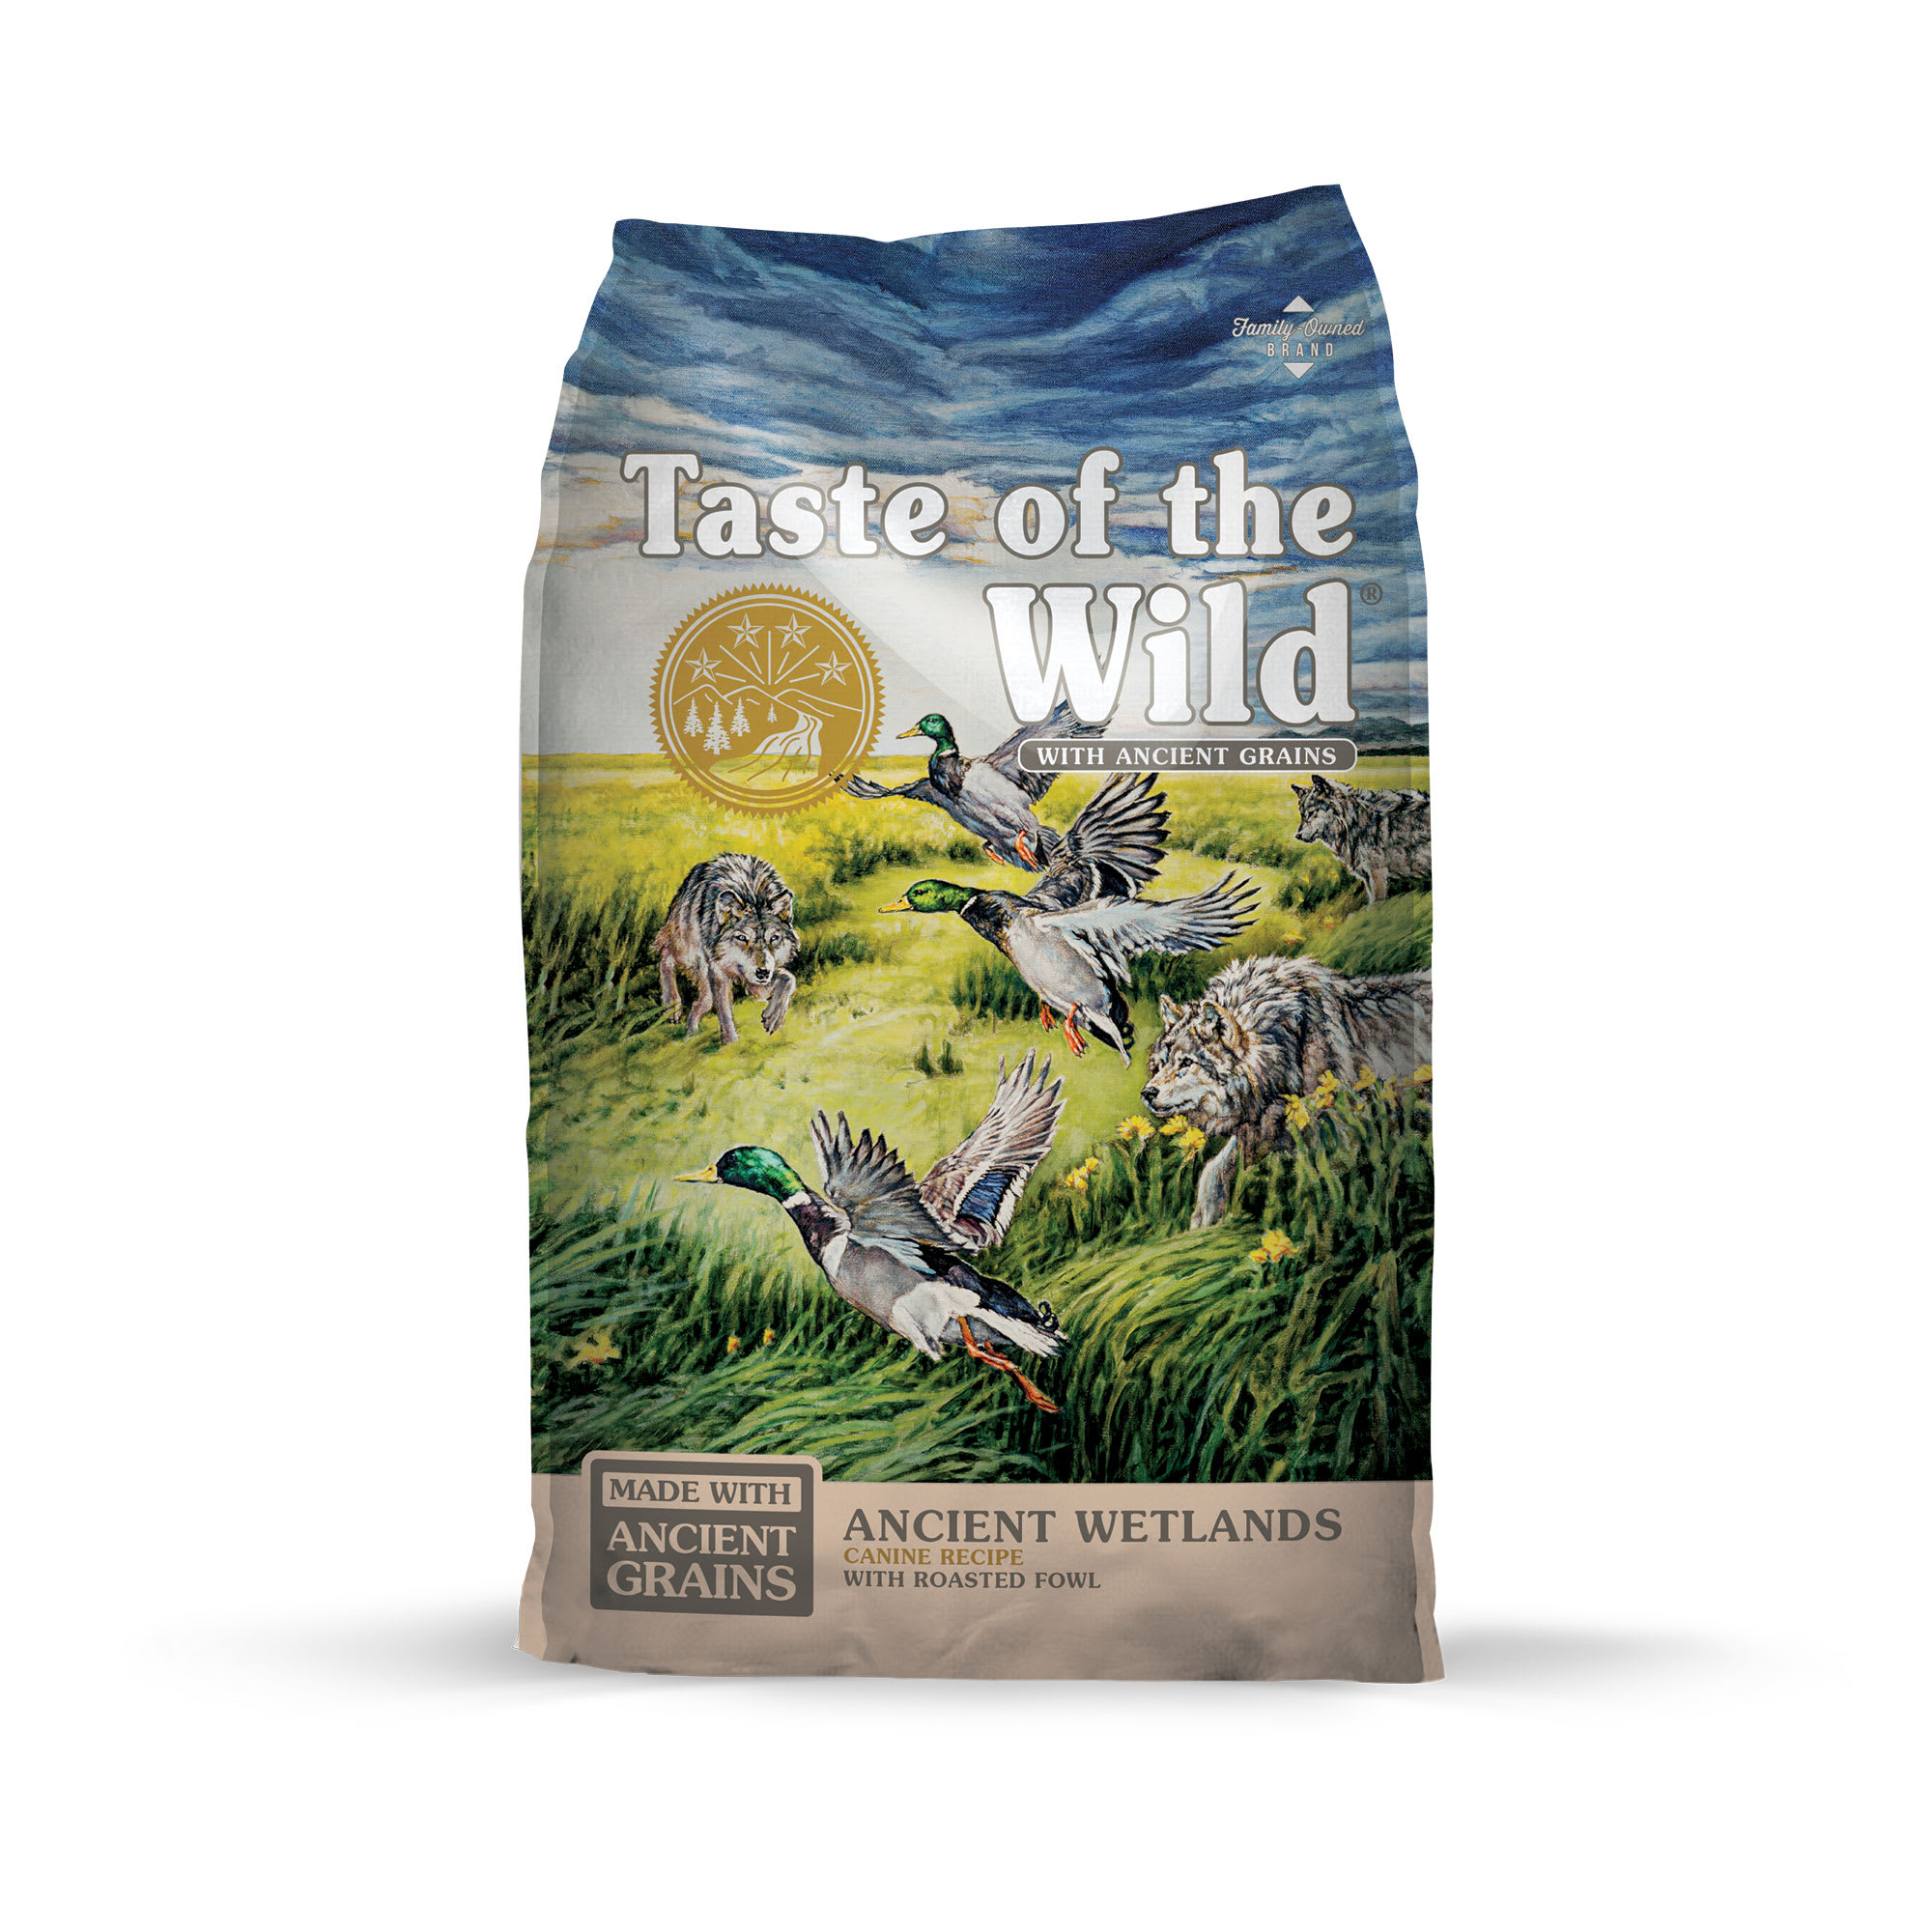 Taste of the Wild Ancient Wetlands with Roasted Fowl and Ancient Grains Dry Dog Food, 5 lbs.